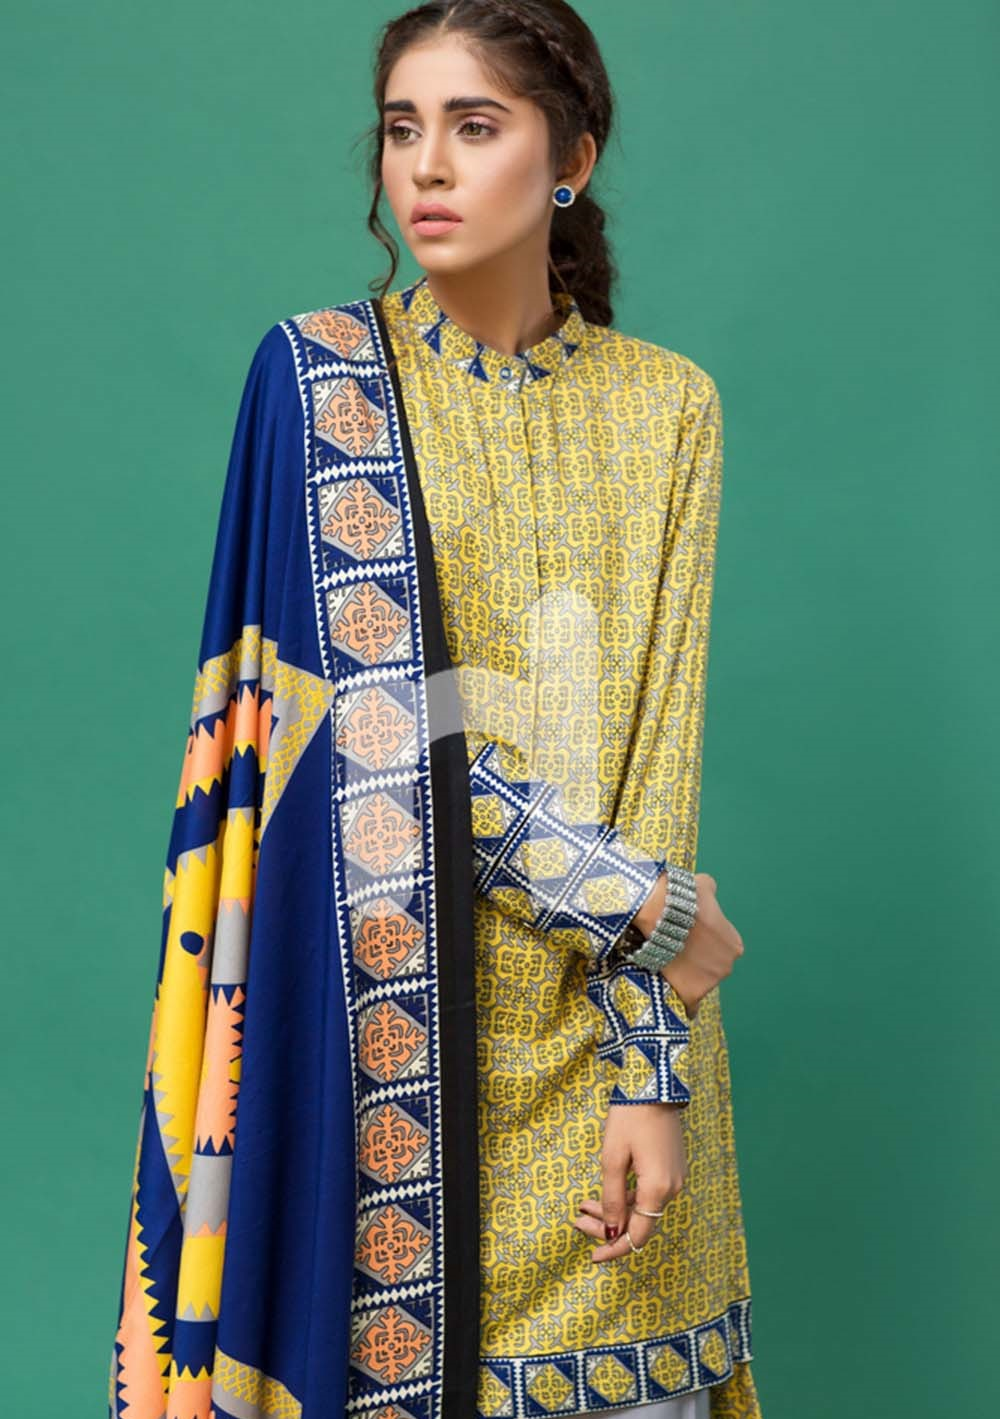 Nishat Yellow linen shirt with blue shawl